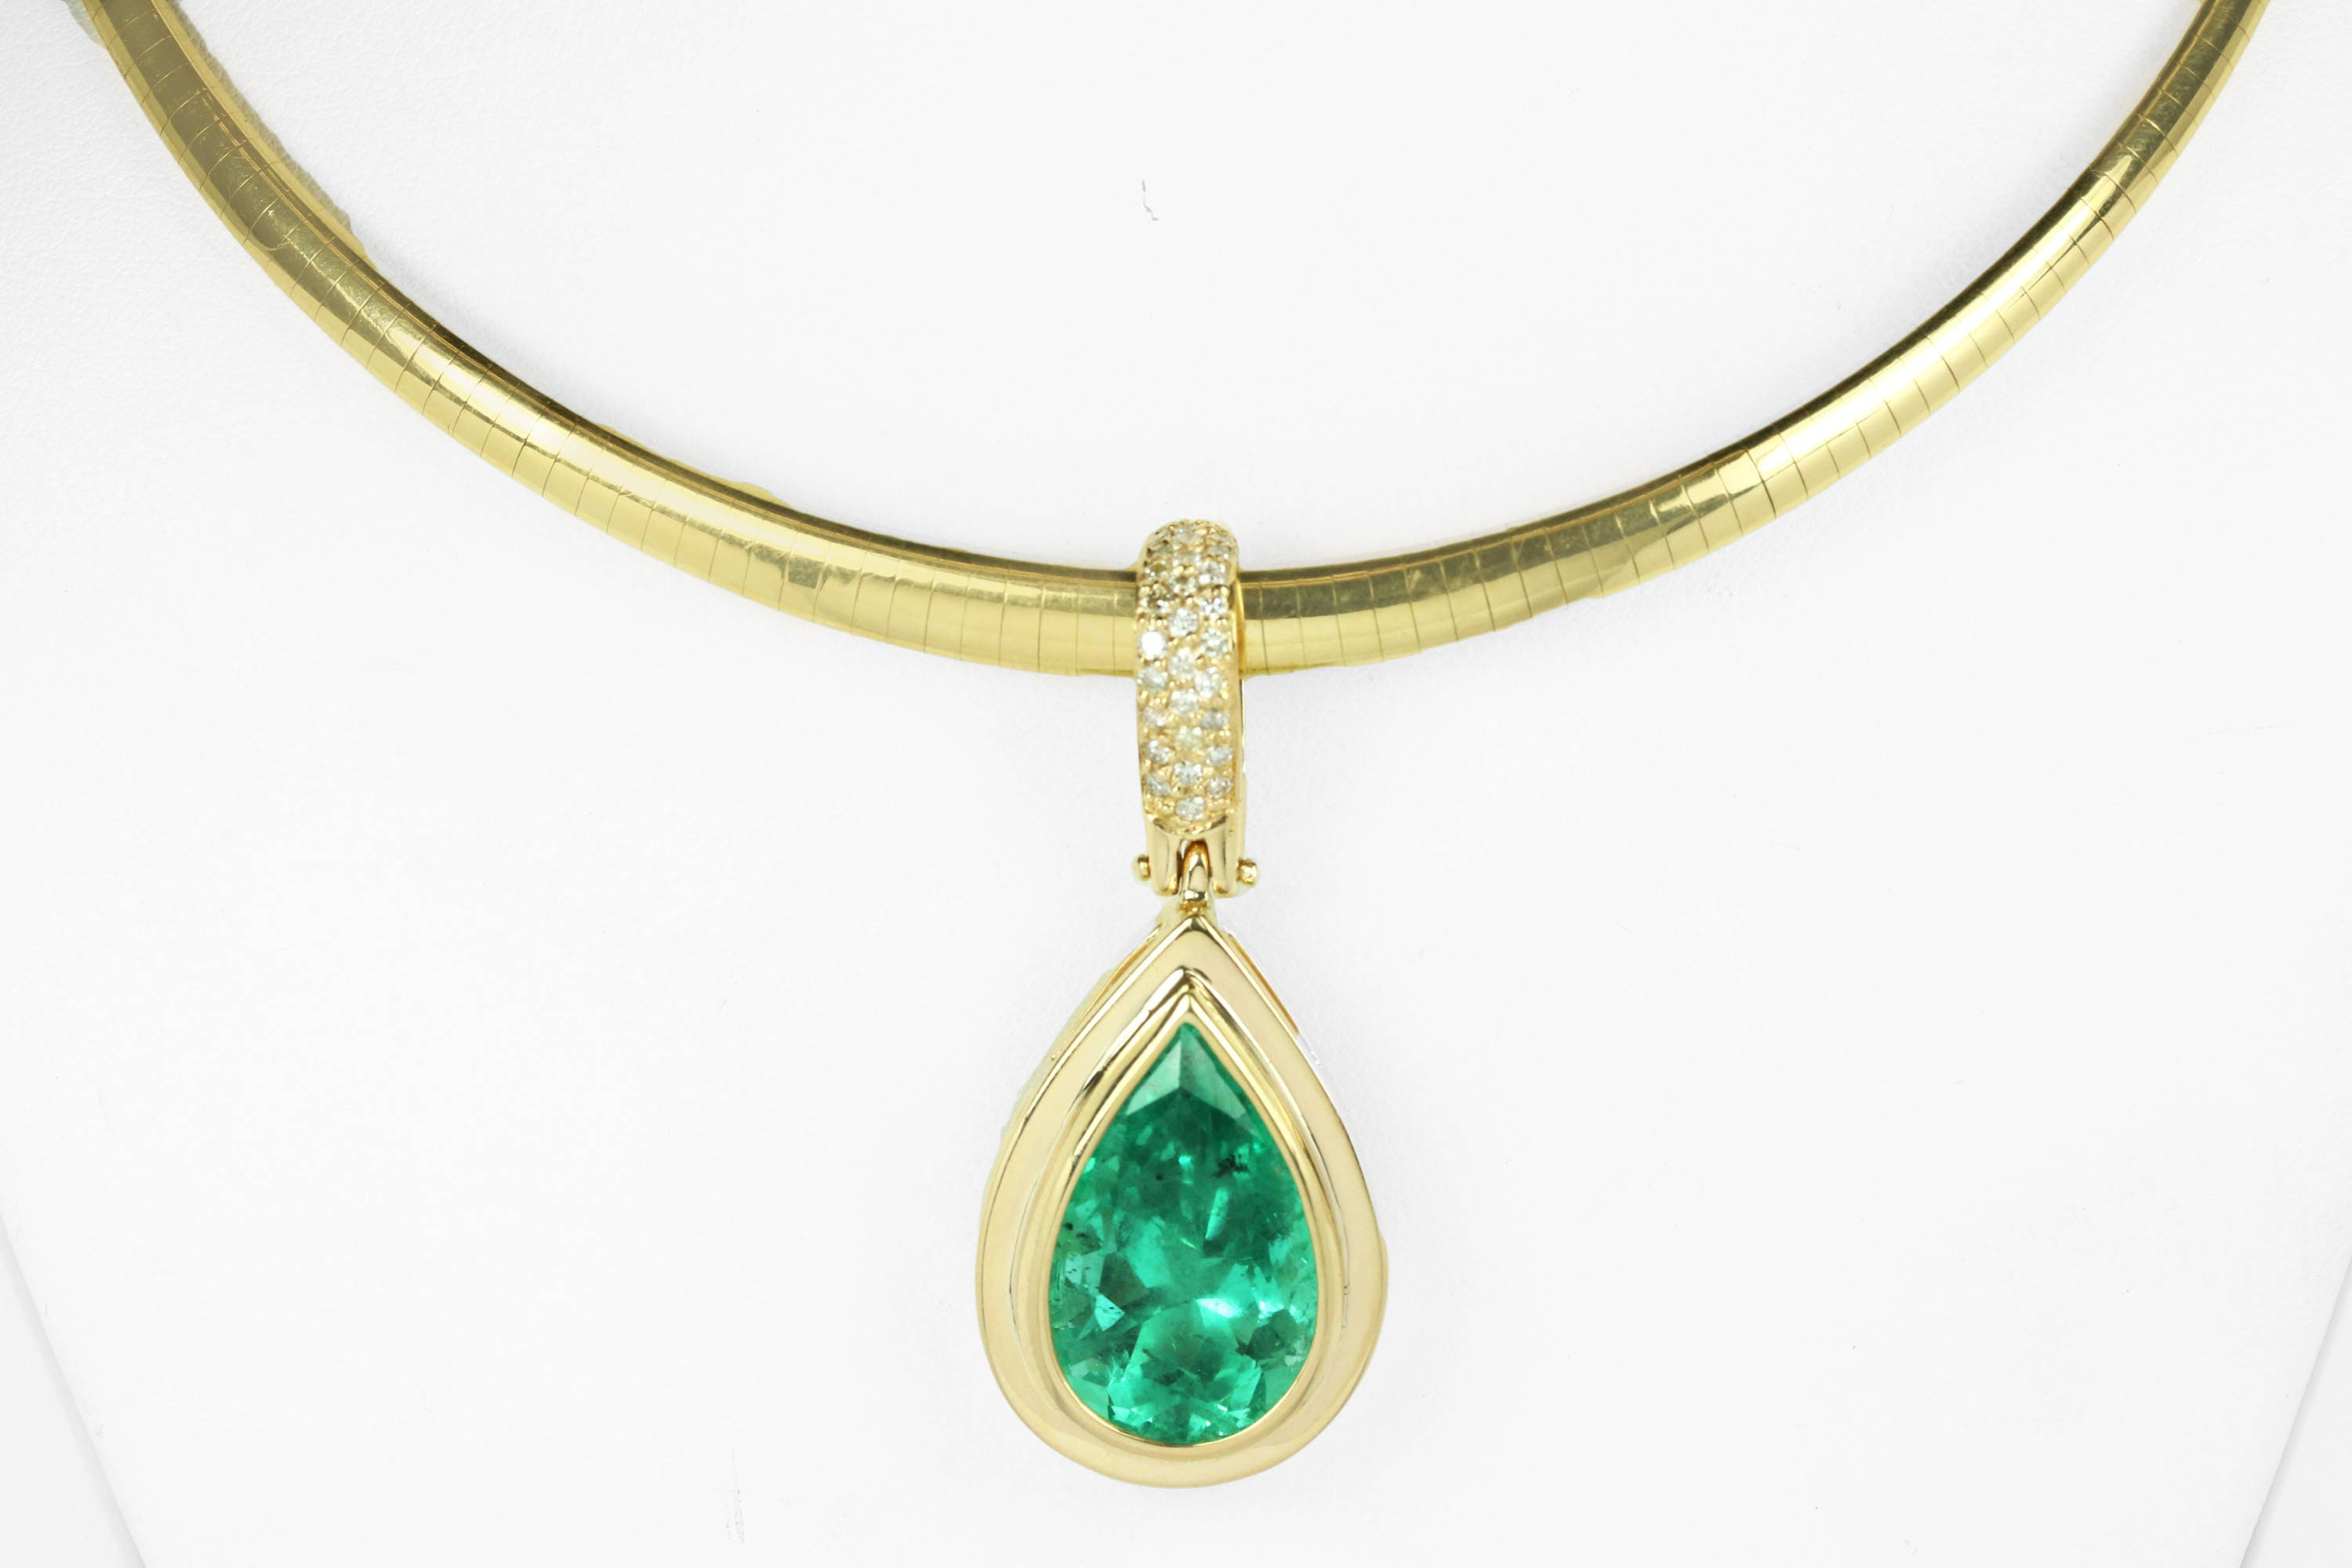 diamonds emerald daniel and ct gold product white round pendant necklace ctw on center halo stone chain dainty